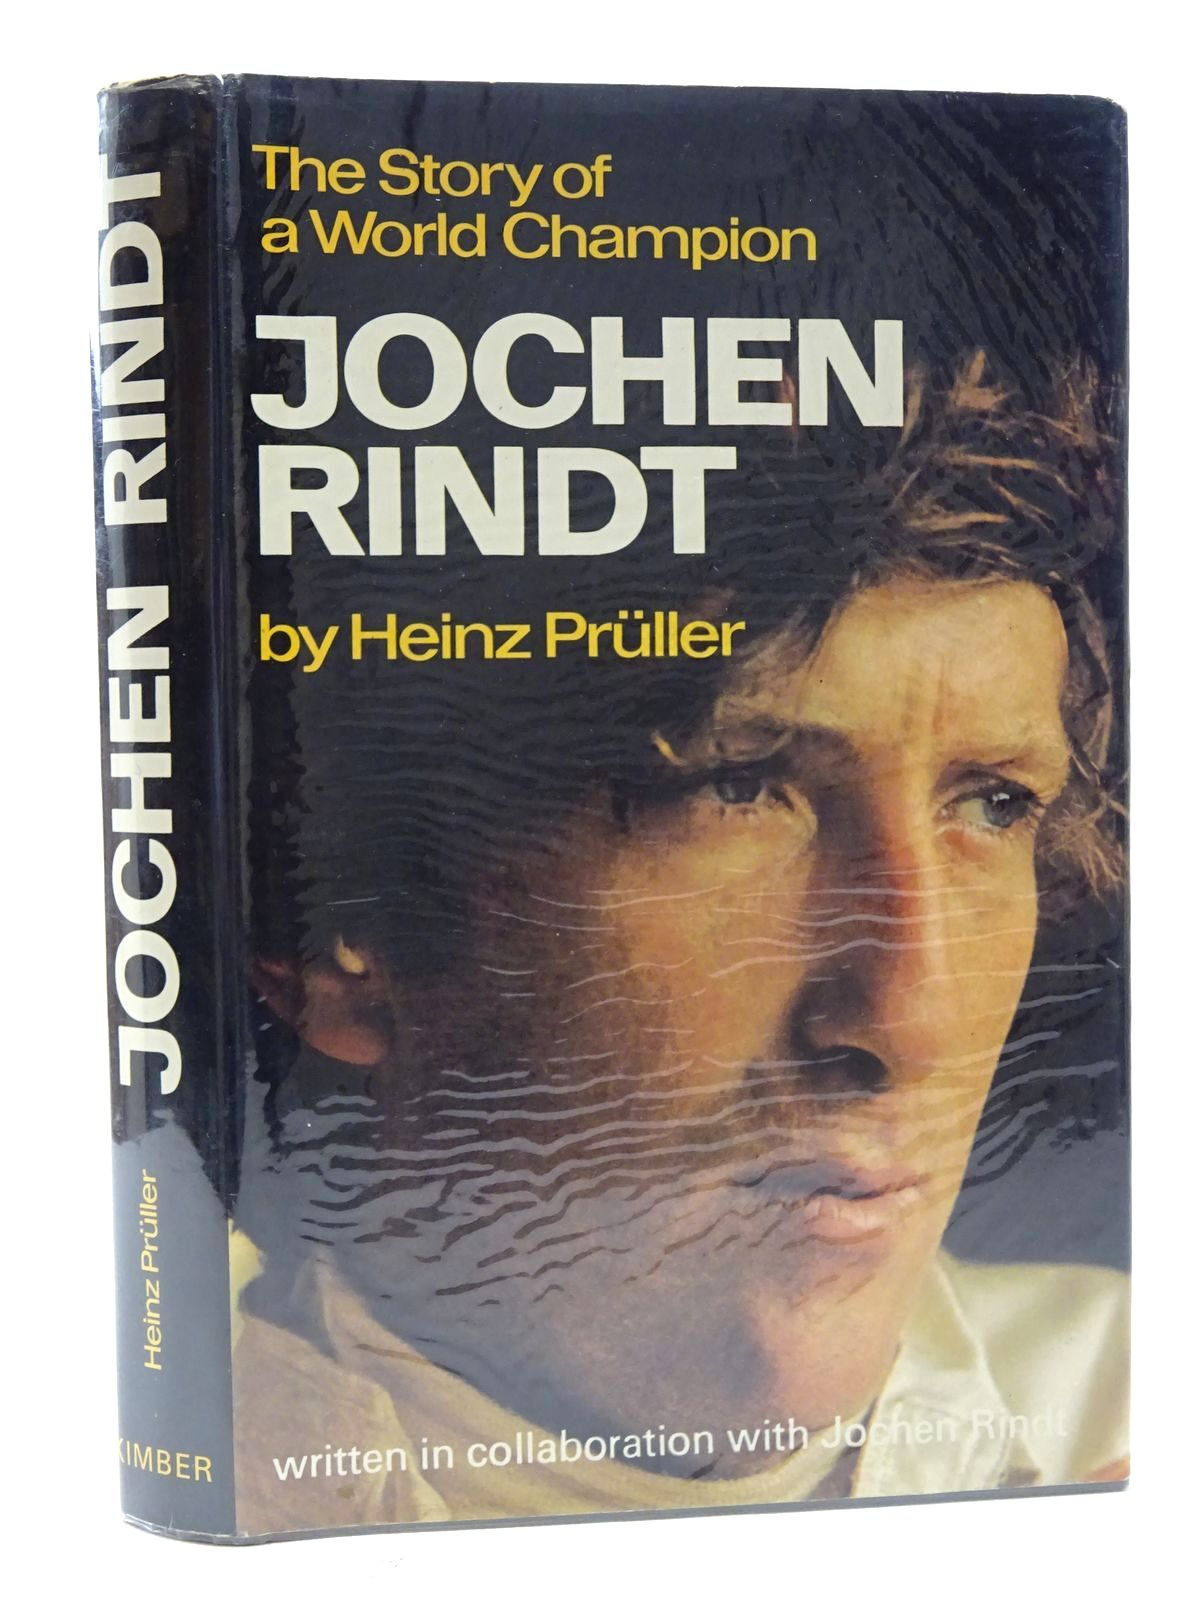 Photo of JOCHEN RINDT THE STORY OF A WORLD CHAMPION written by Pruller, Heinz published by William Kimber (STOCK CODE: 1610571)  for sale by Stella & Rose's Books